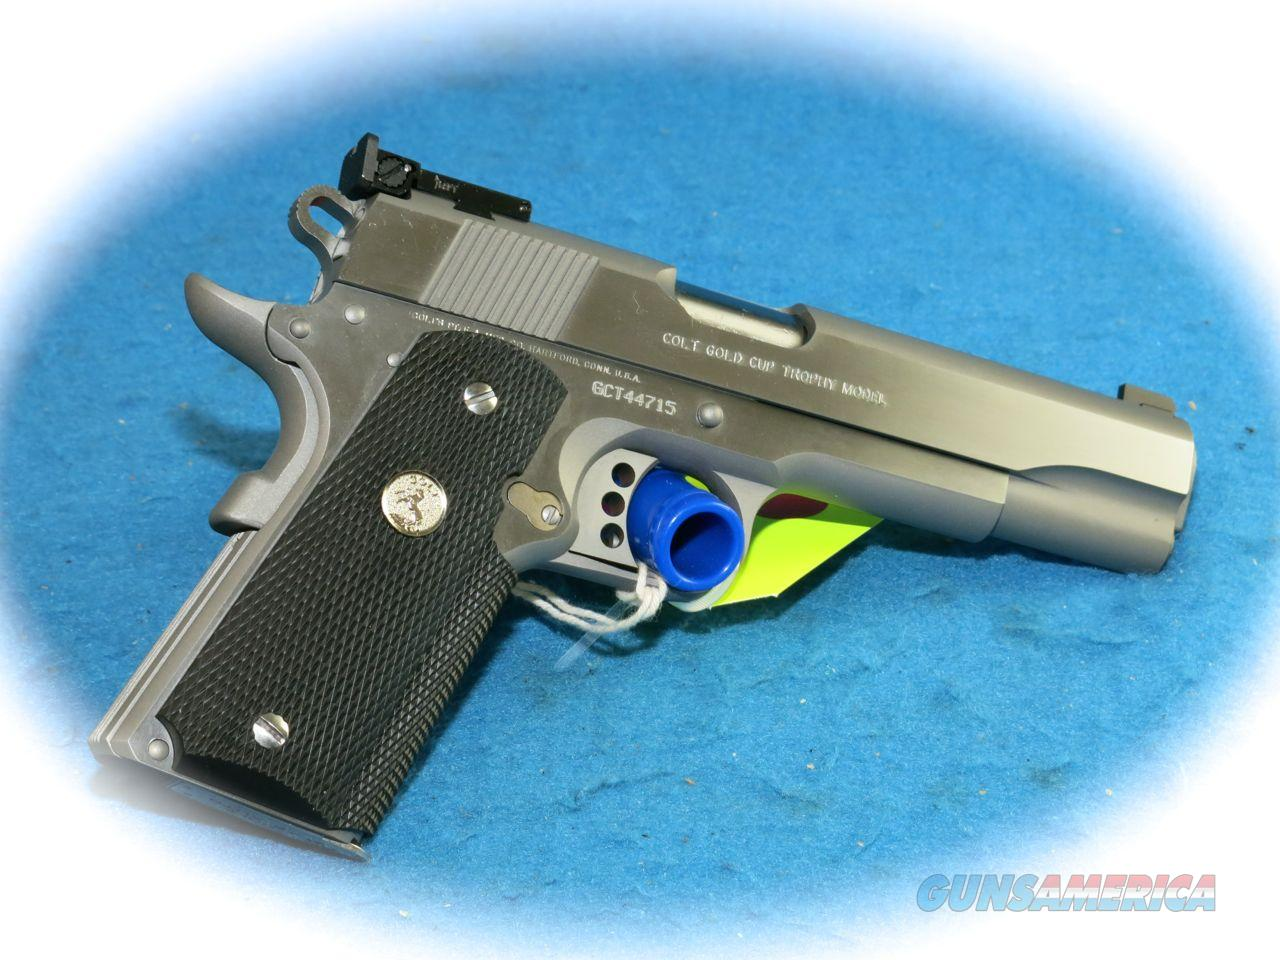 Colt 1911 Gold Cup Trophy .45 ACP SS Pistol **New** ON SALE  Guns > Pistols > Colt Automatic Pistols (1911 & Var)